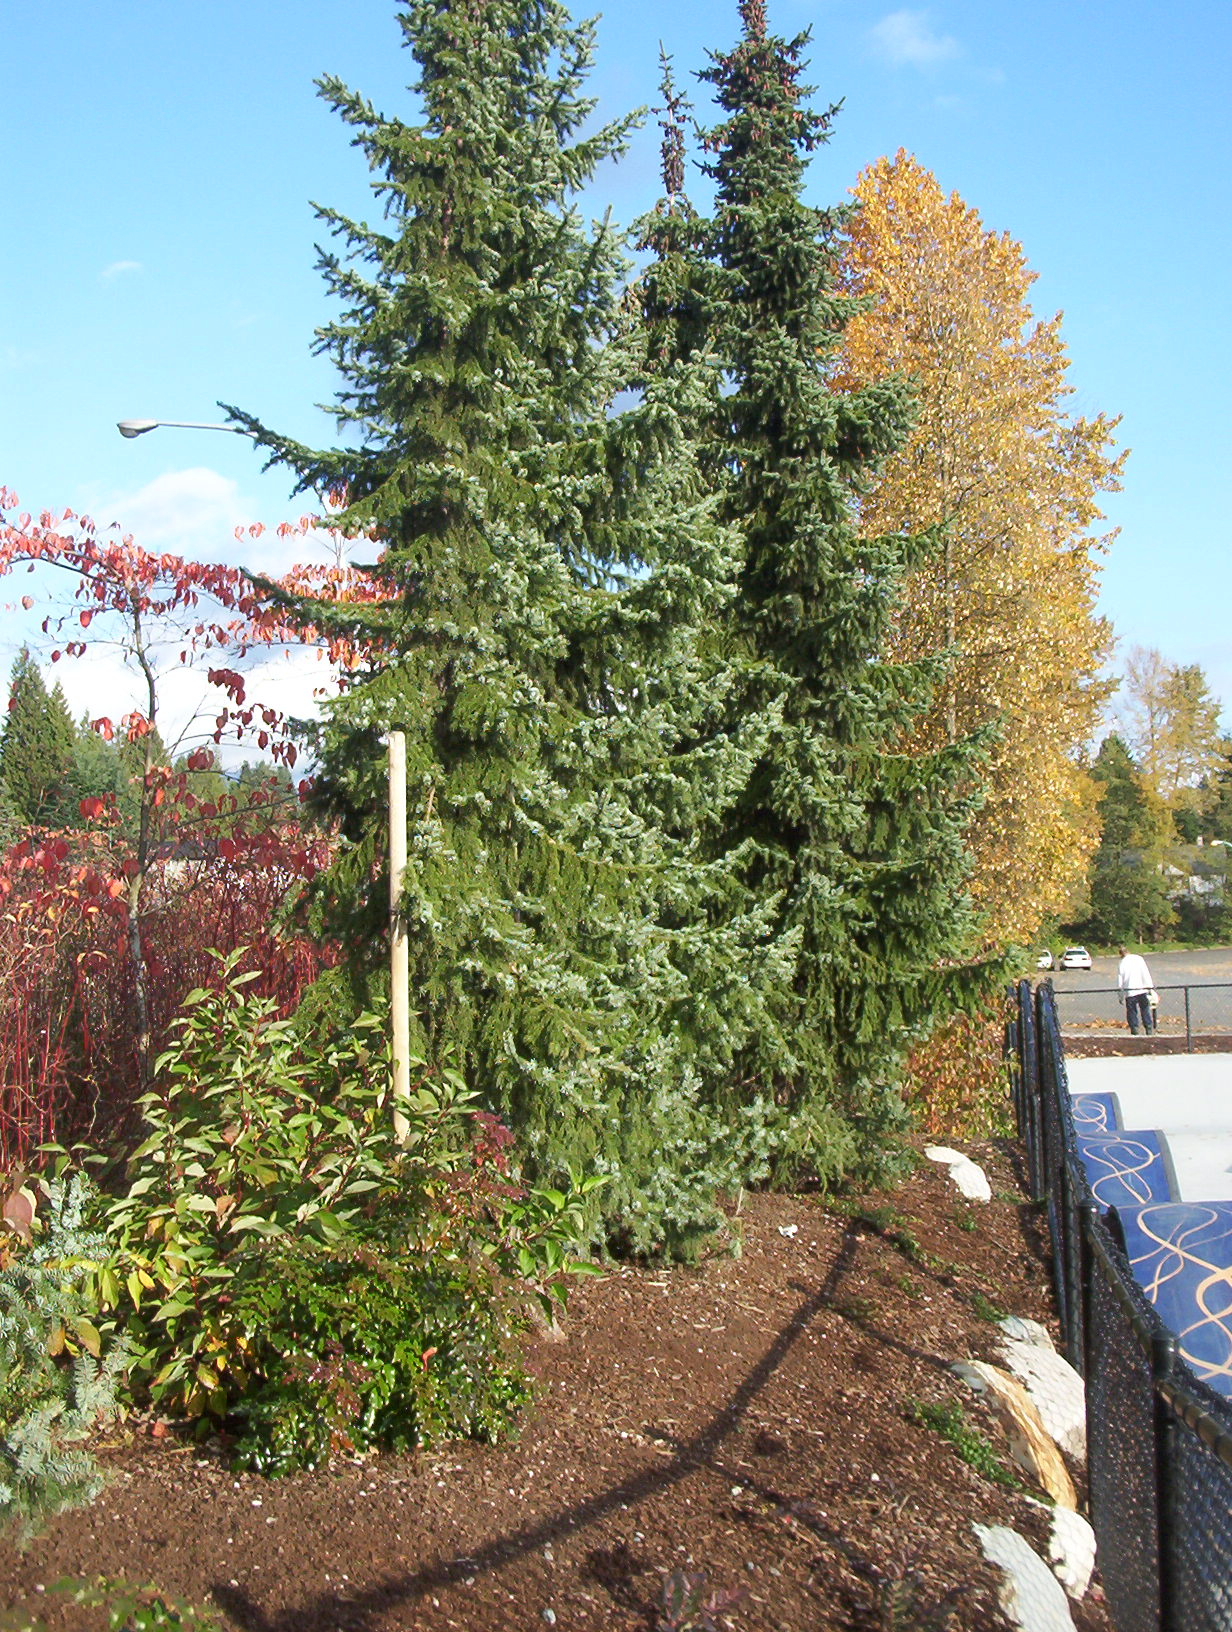 north Vancouver skate park - commercial landscaping